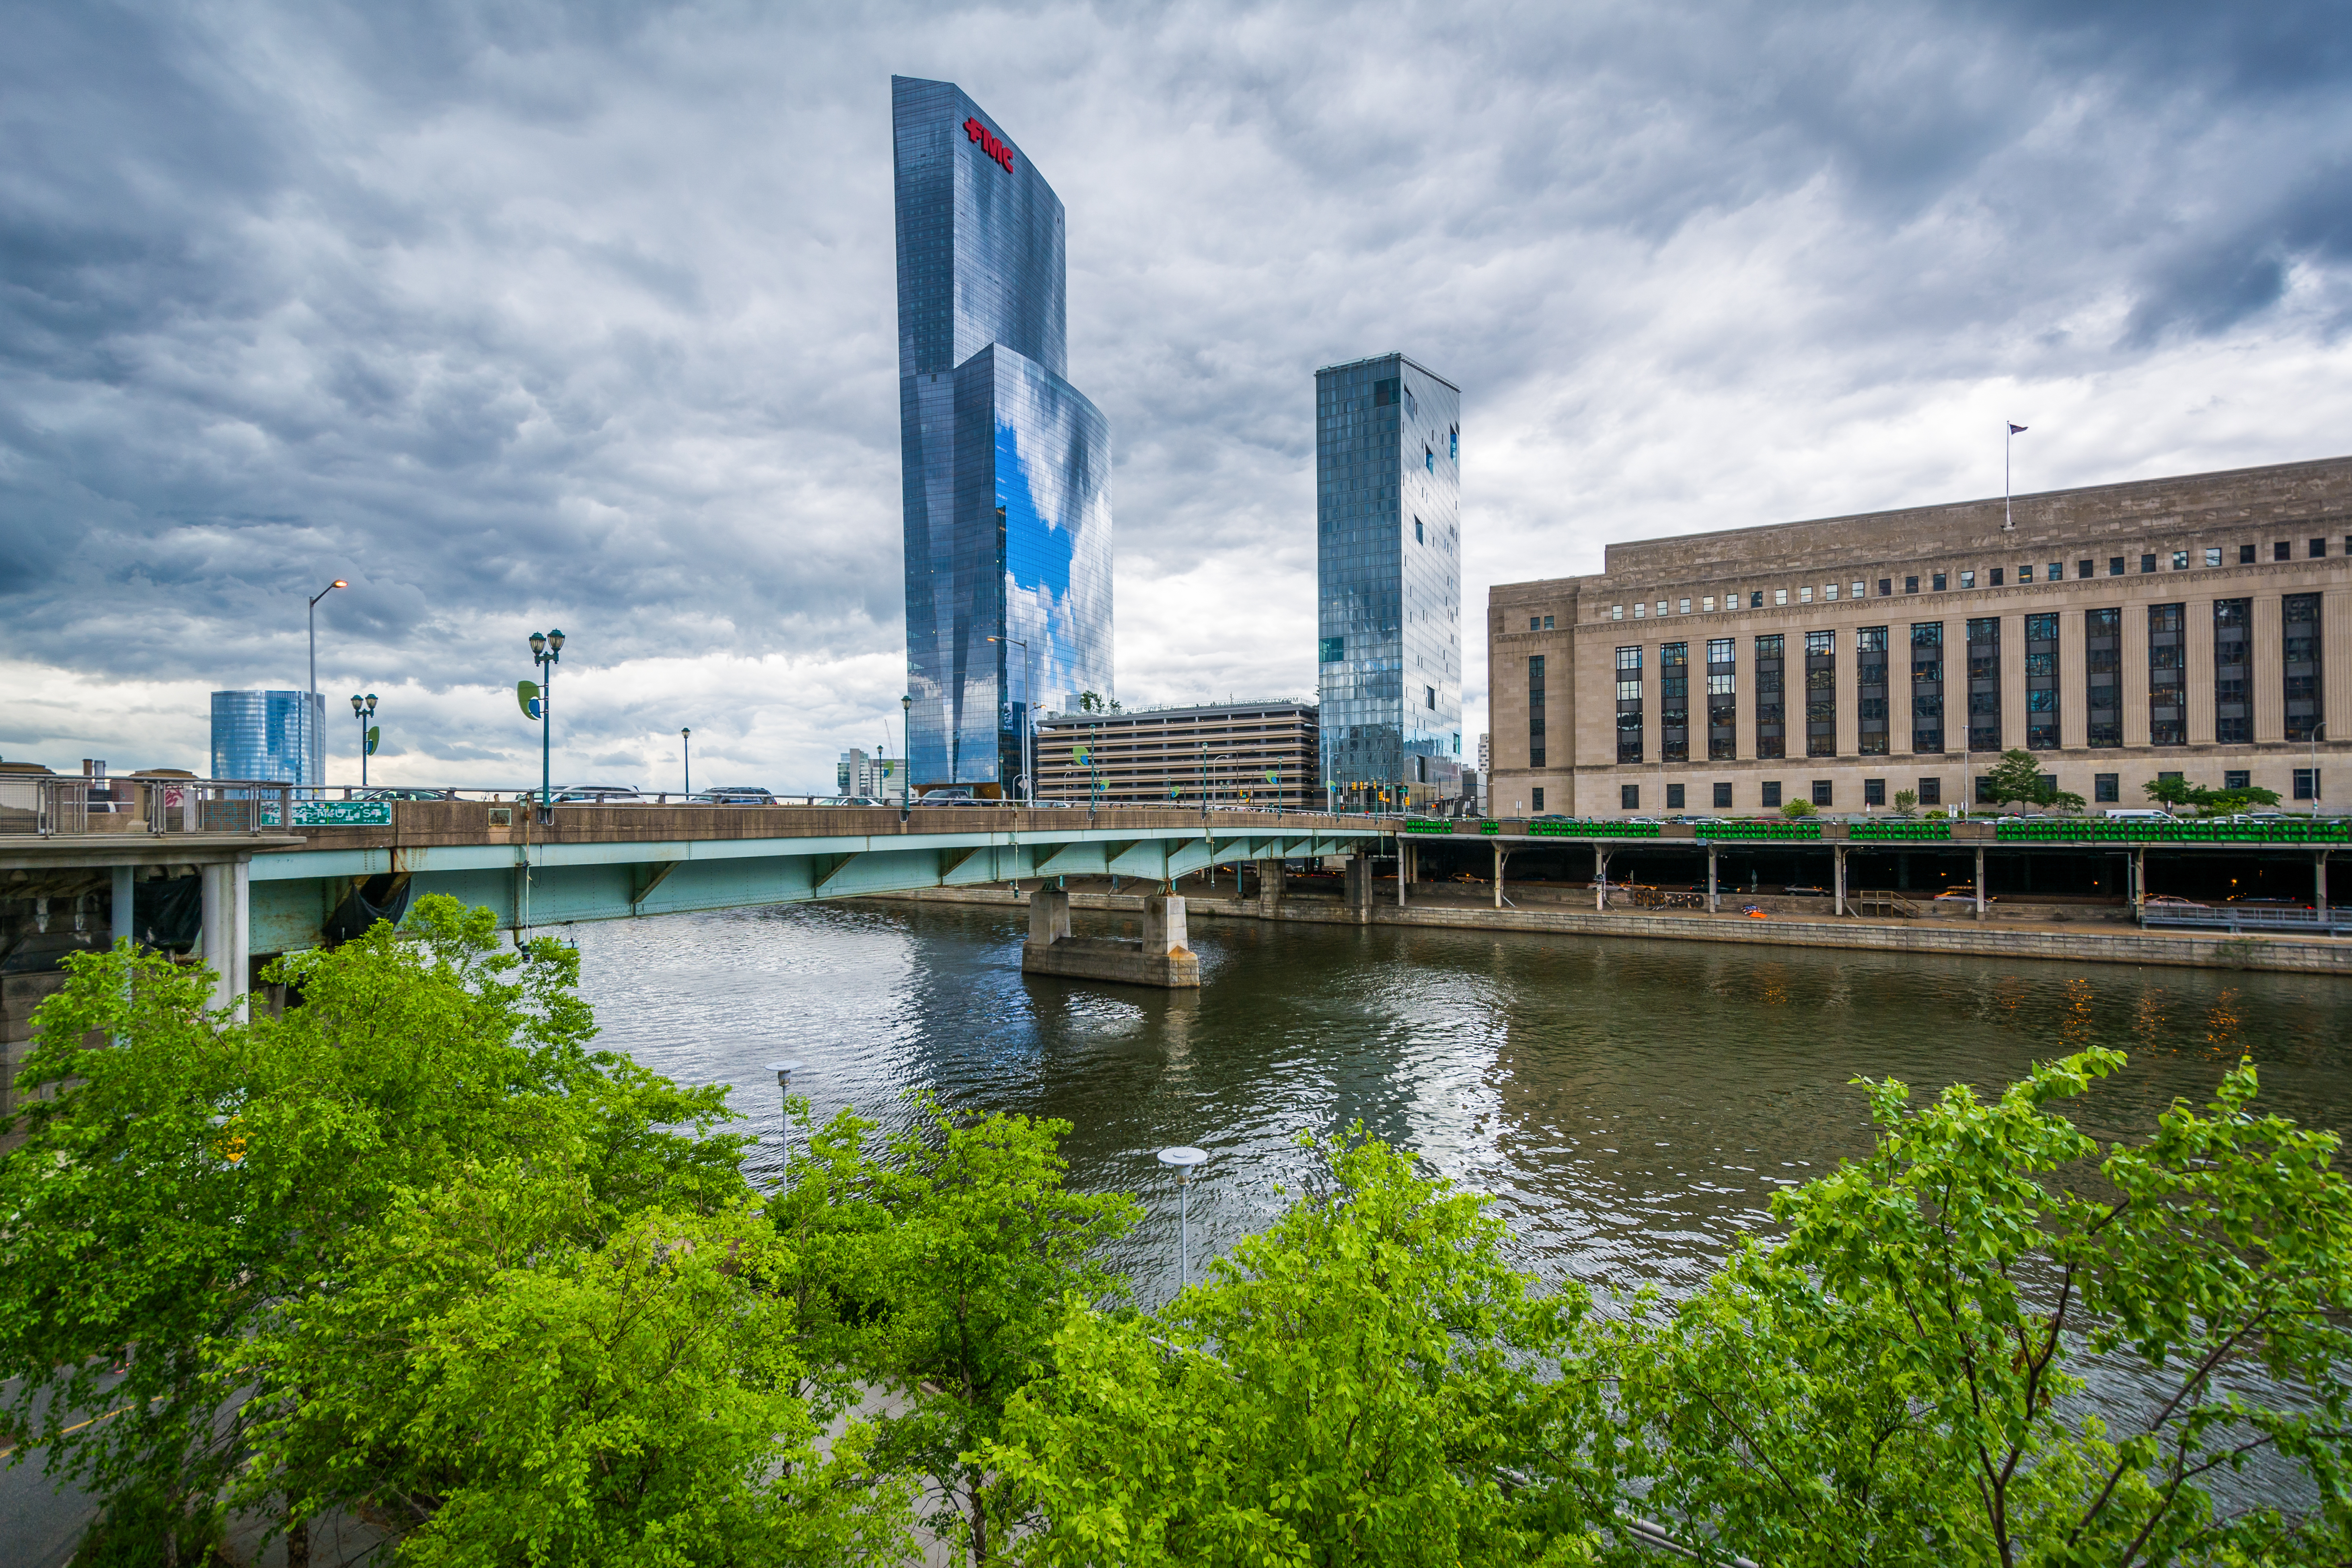 A view of the new FMC Tower along the Schuylkill River in Philadelphia.